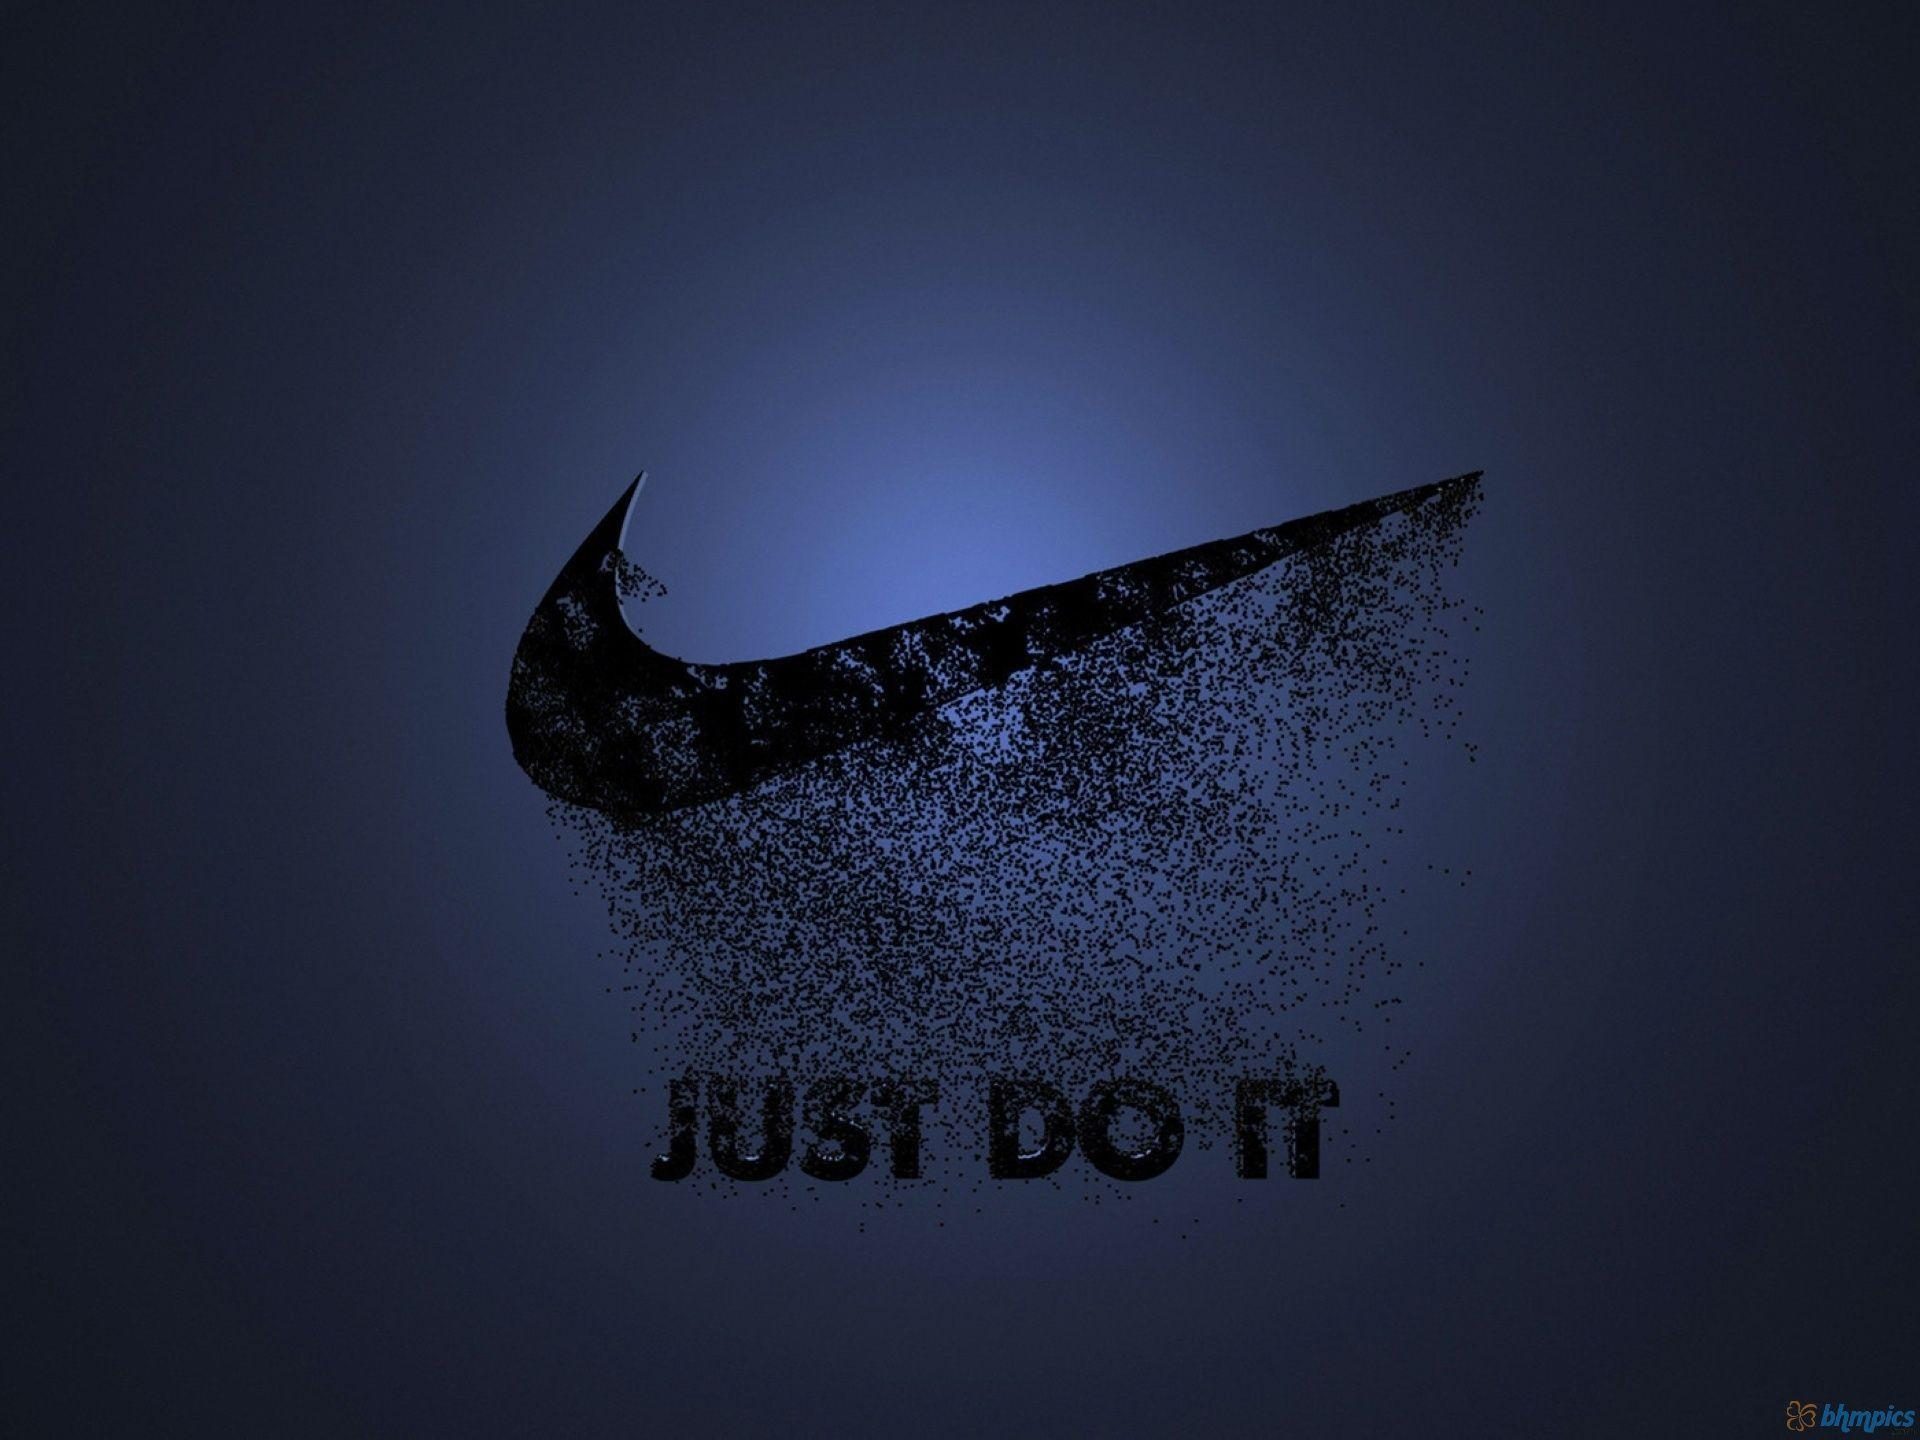 Wallpapers For > Nike Just Do It Wallpapers For Iphone